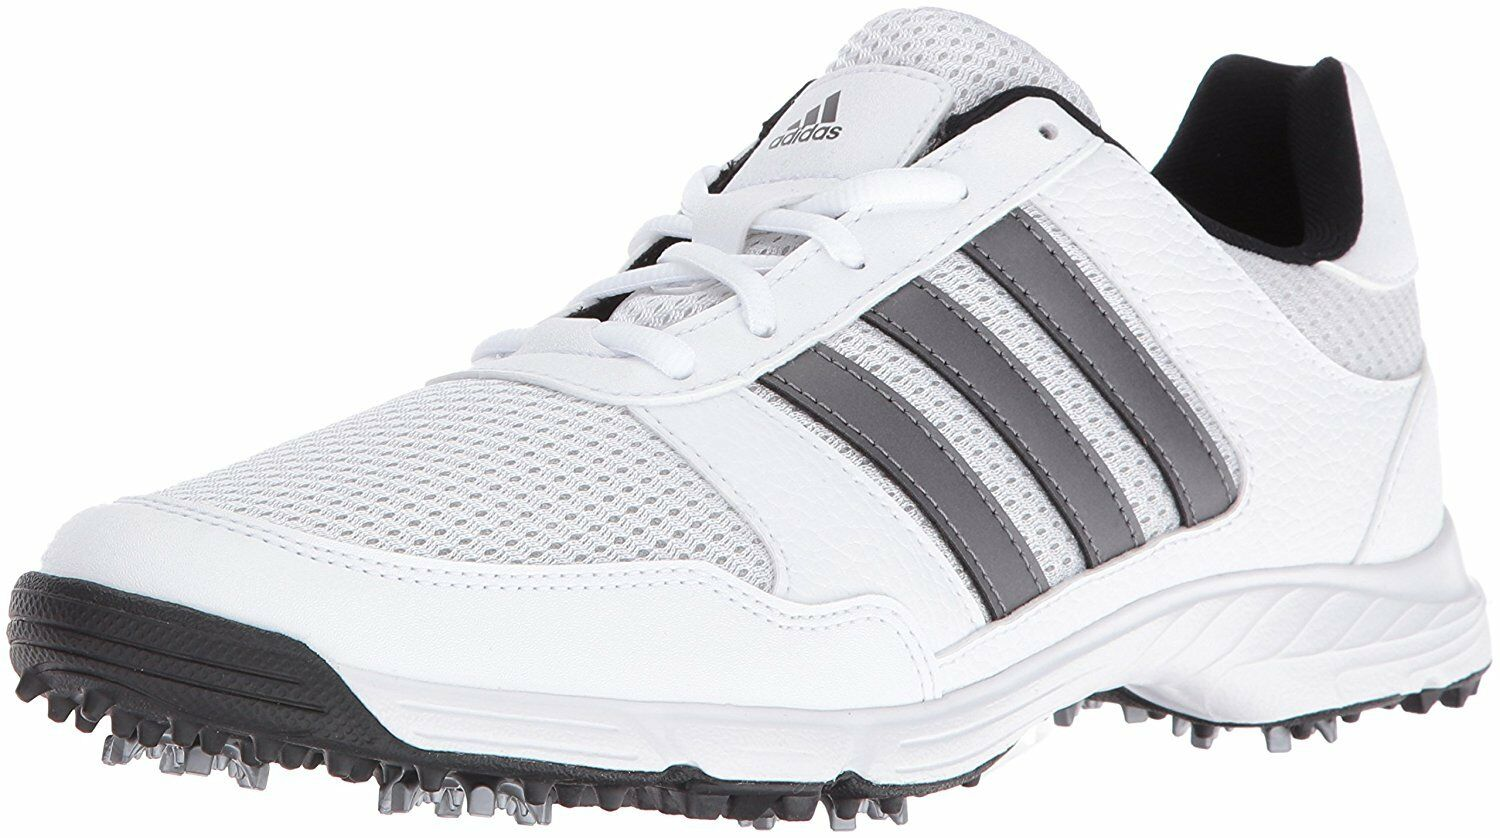 Adidas Golf F33549 Uomo Tech Response Ftwwht/Dksi ShoeM- Choose Choose Choose SZ/Color. 3c8c74